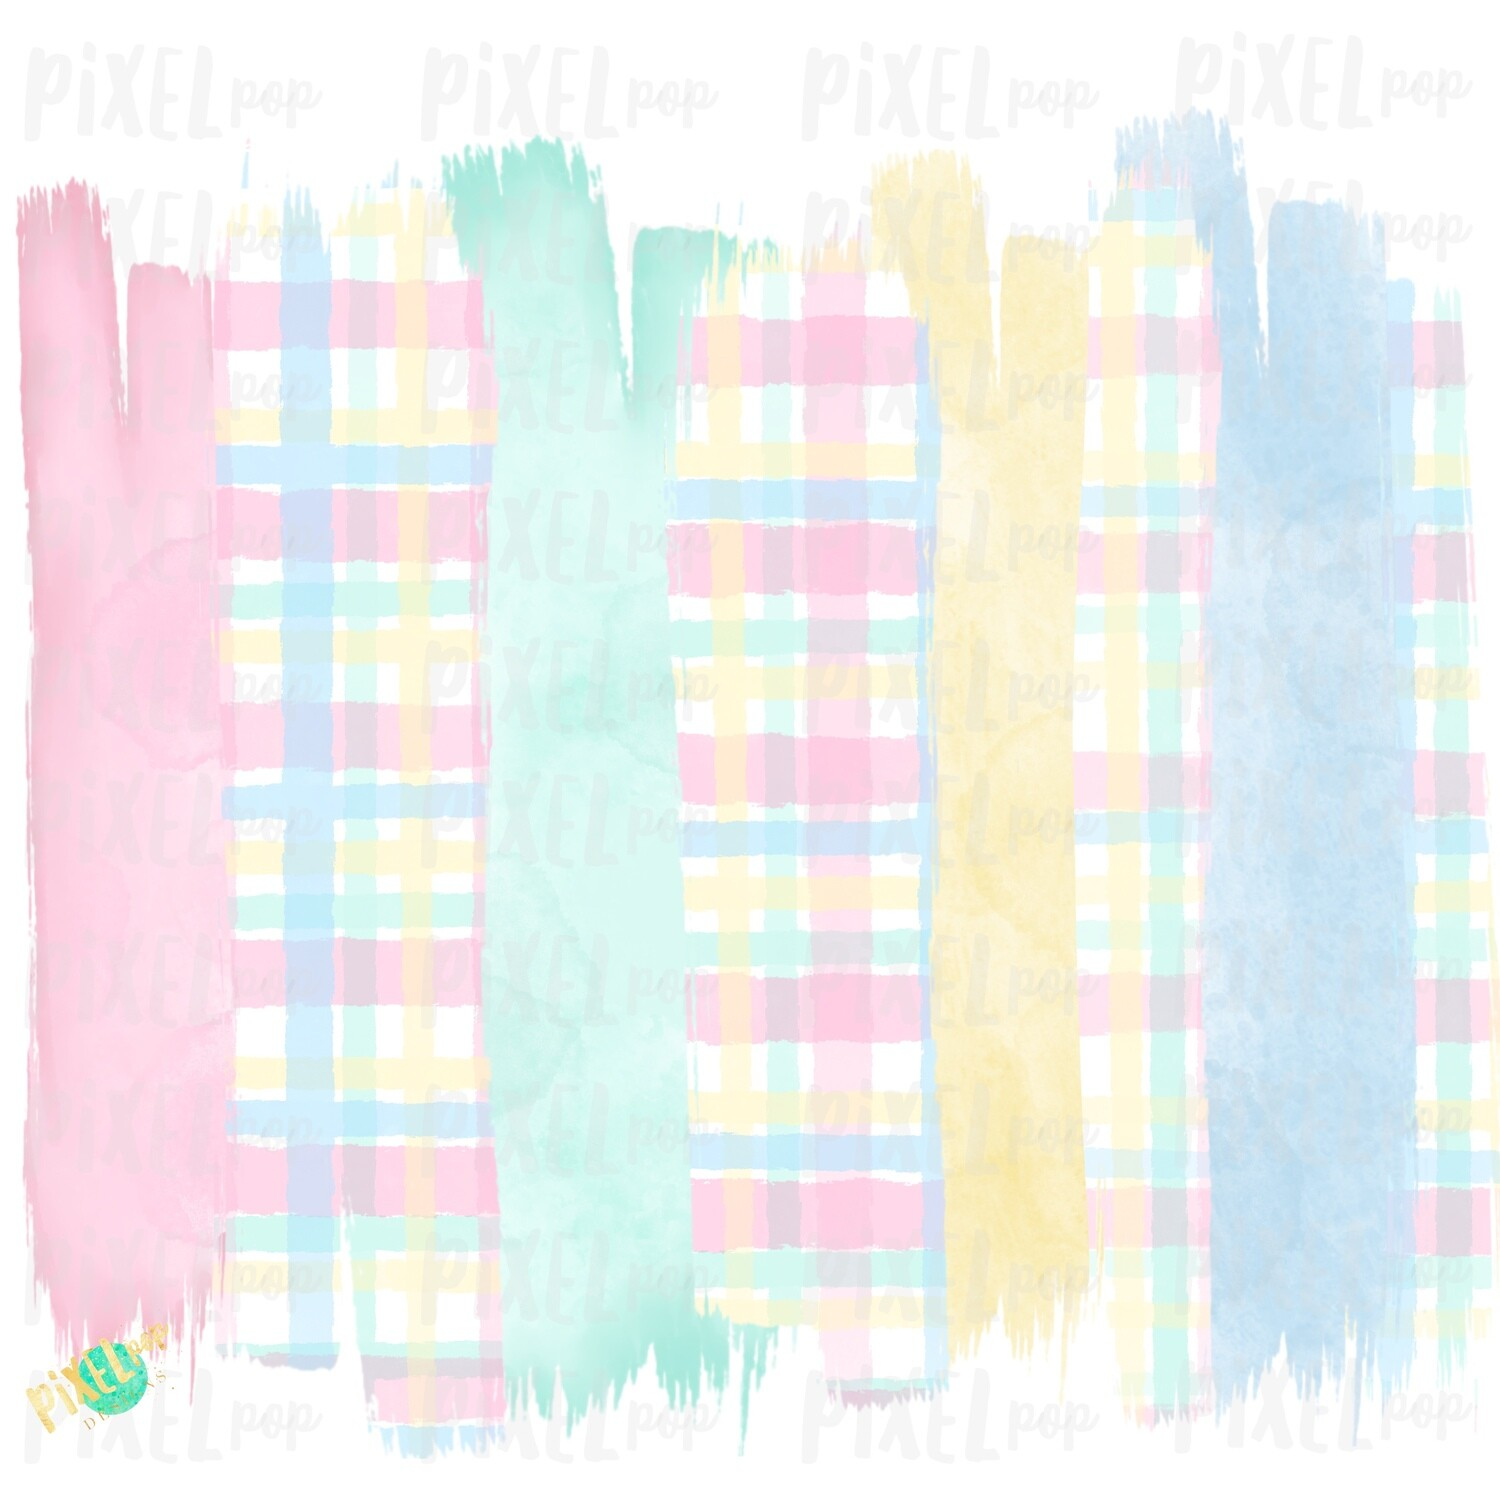 Pastel Plaid Brush Strokes Background Sublimation PNG   Reading PNG   Art   Oh the Places   Hand Painted   Digital Background   Printable